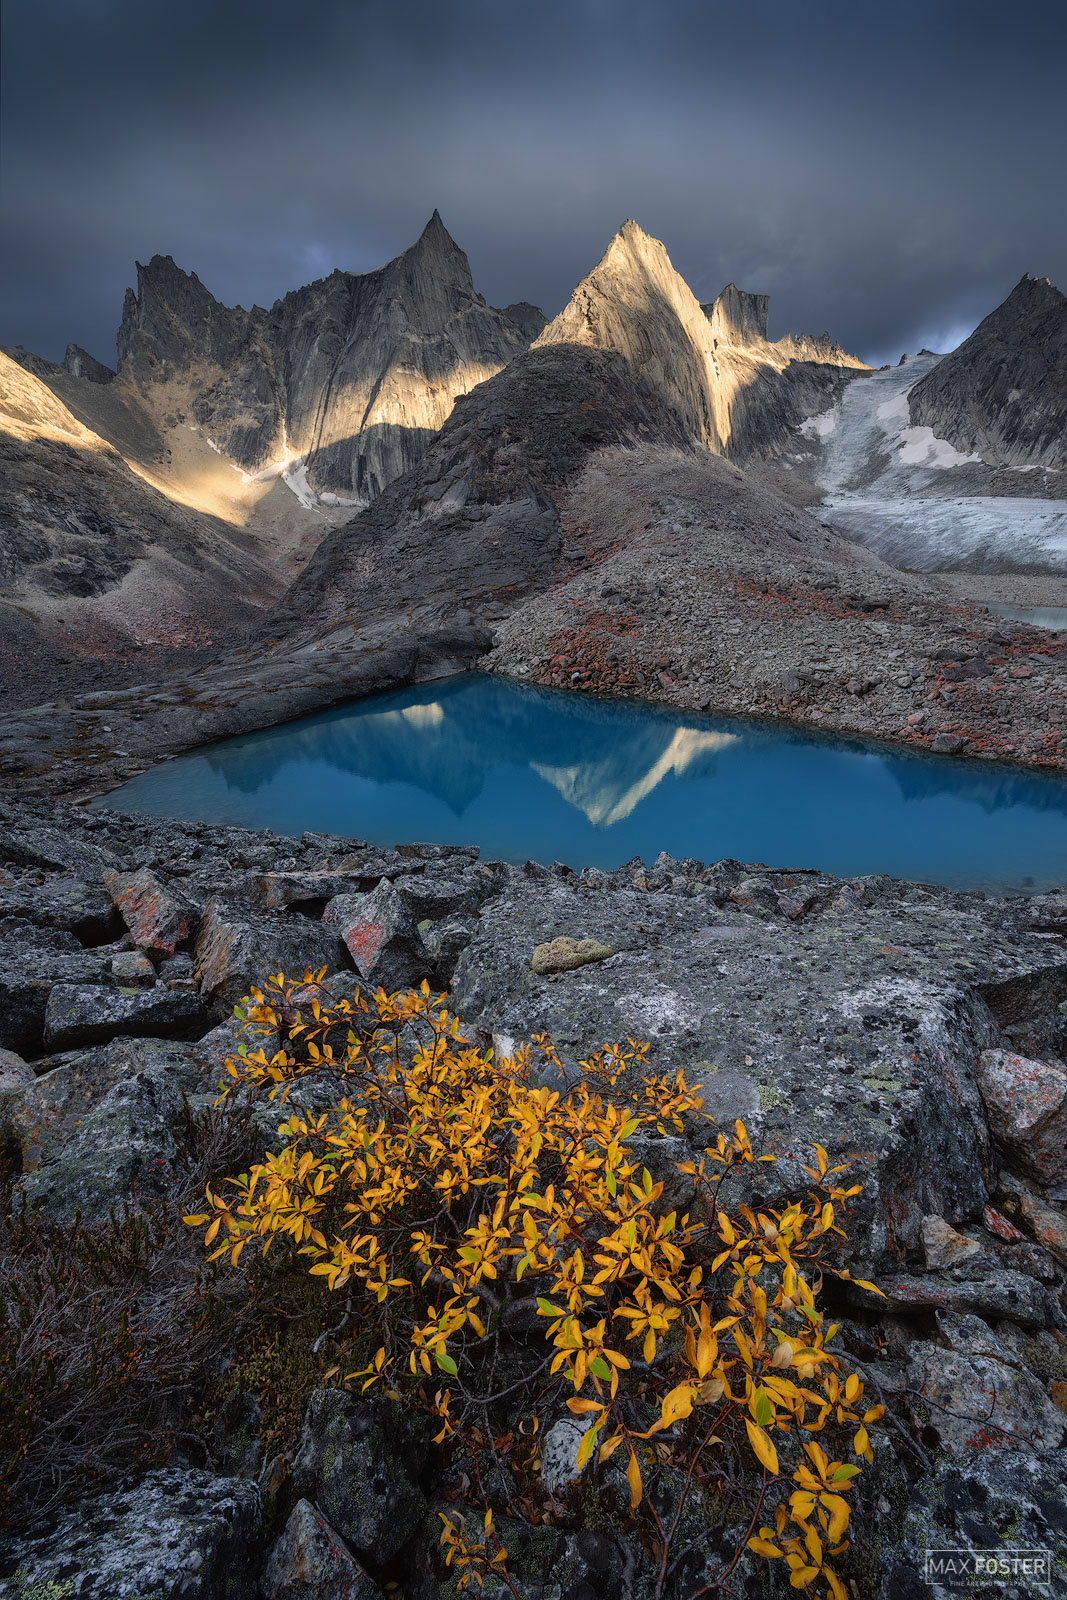 Arrigetch Peaks Wilderness, Gates of the Arctic National Park, Alaska, Razor's Edge, photo